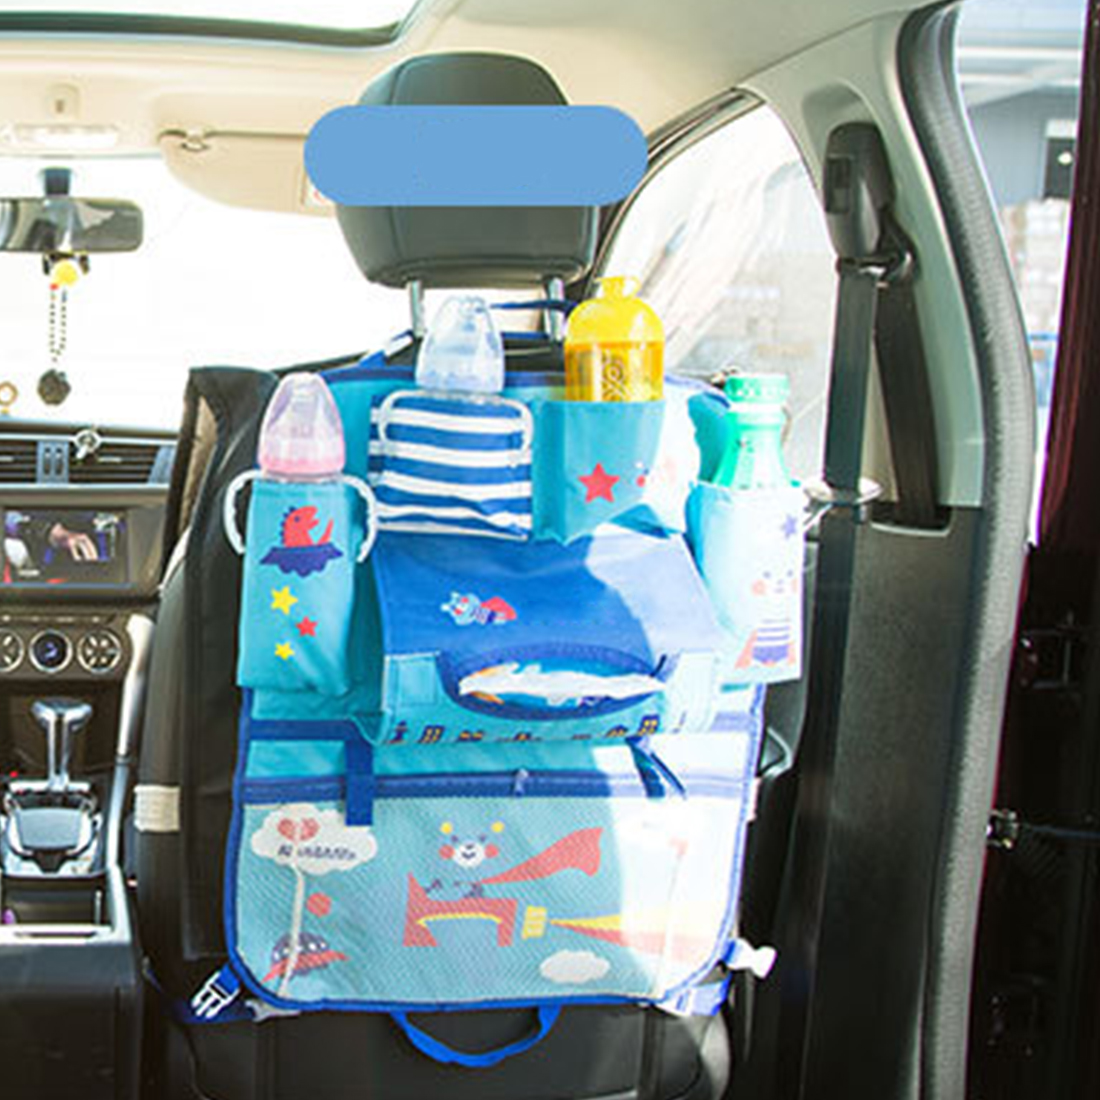 New Arrival Car Seat Back Storage Hang Bag Organizer Car-styling Baby Product Stowing Tidying Automobile Interior Accessories